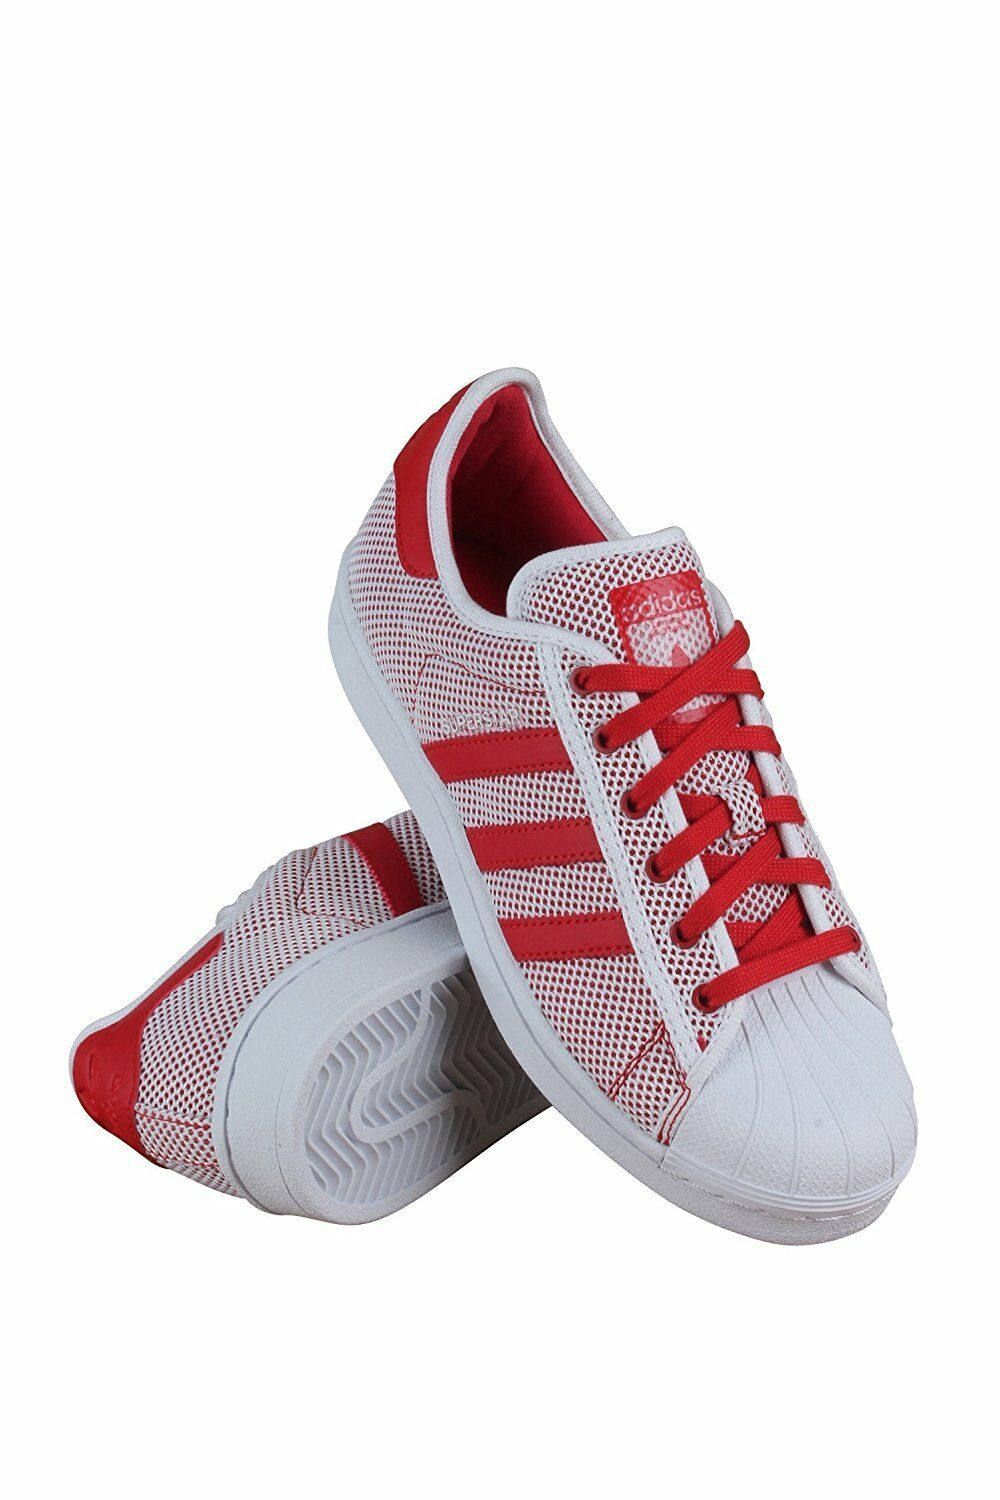 ADIMY adidas Originals Mens Superstar Adicolor Fashion Sneaker- Pick SZ color.